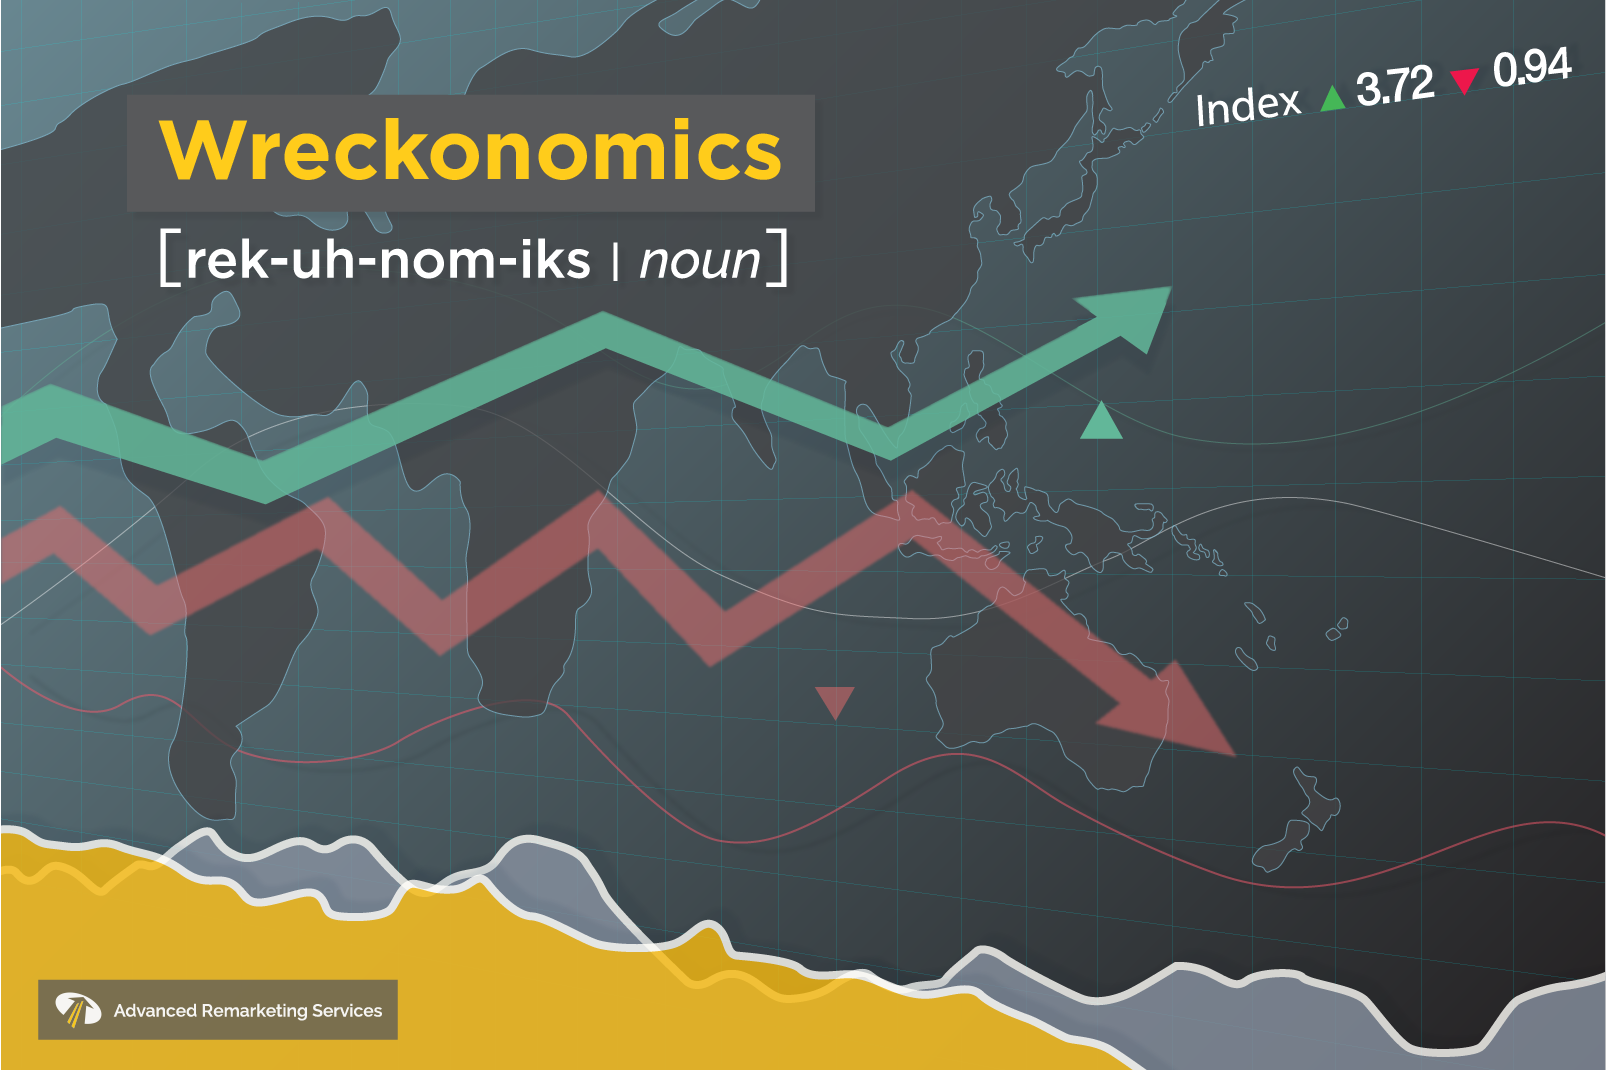 Wreckonomics 1.5: Segmentation and Tranche Values